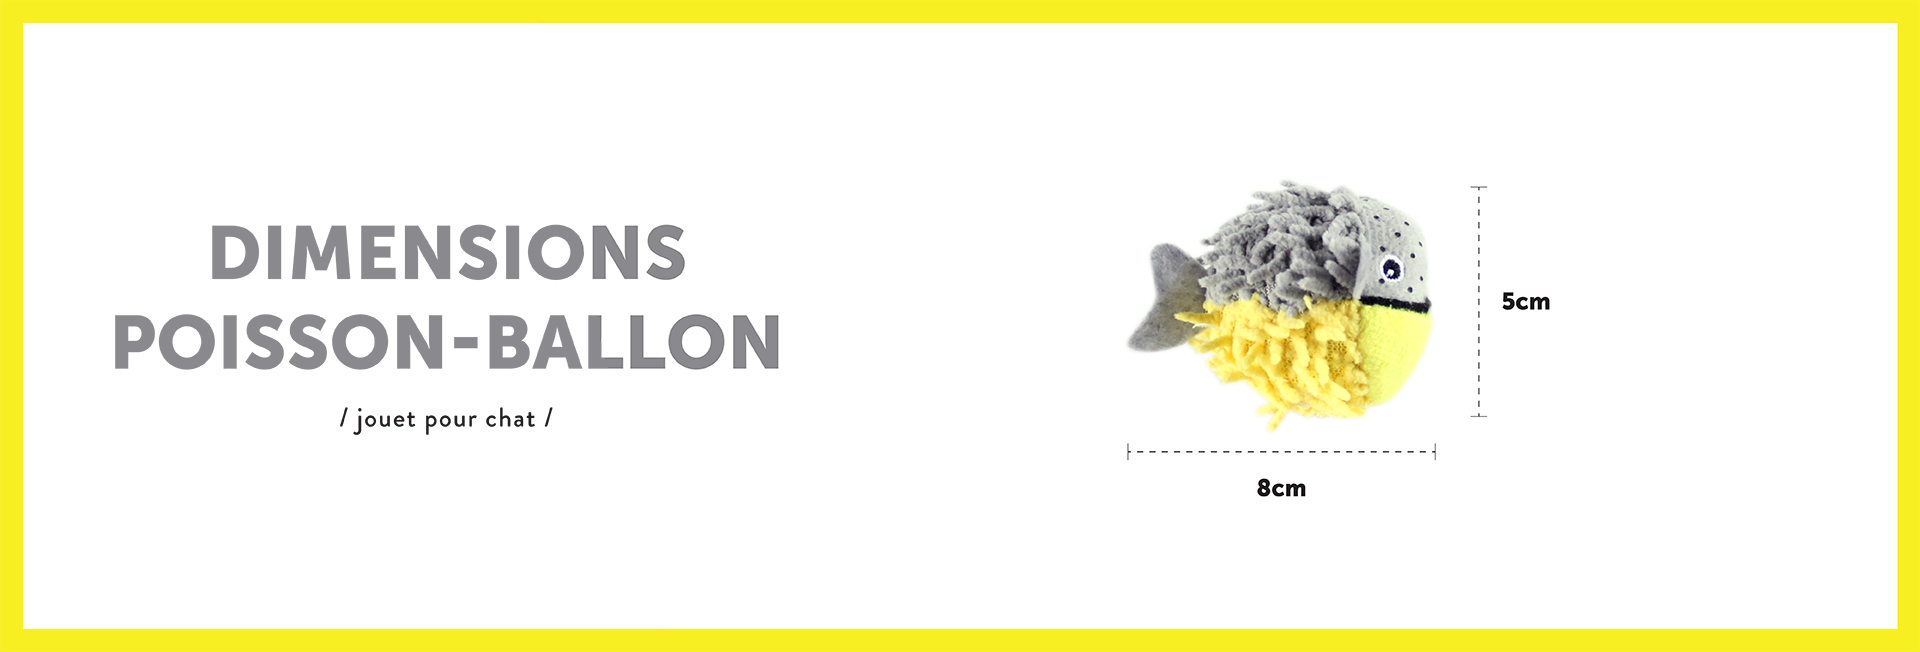 dimensions-fugu-fish-for-cats-french